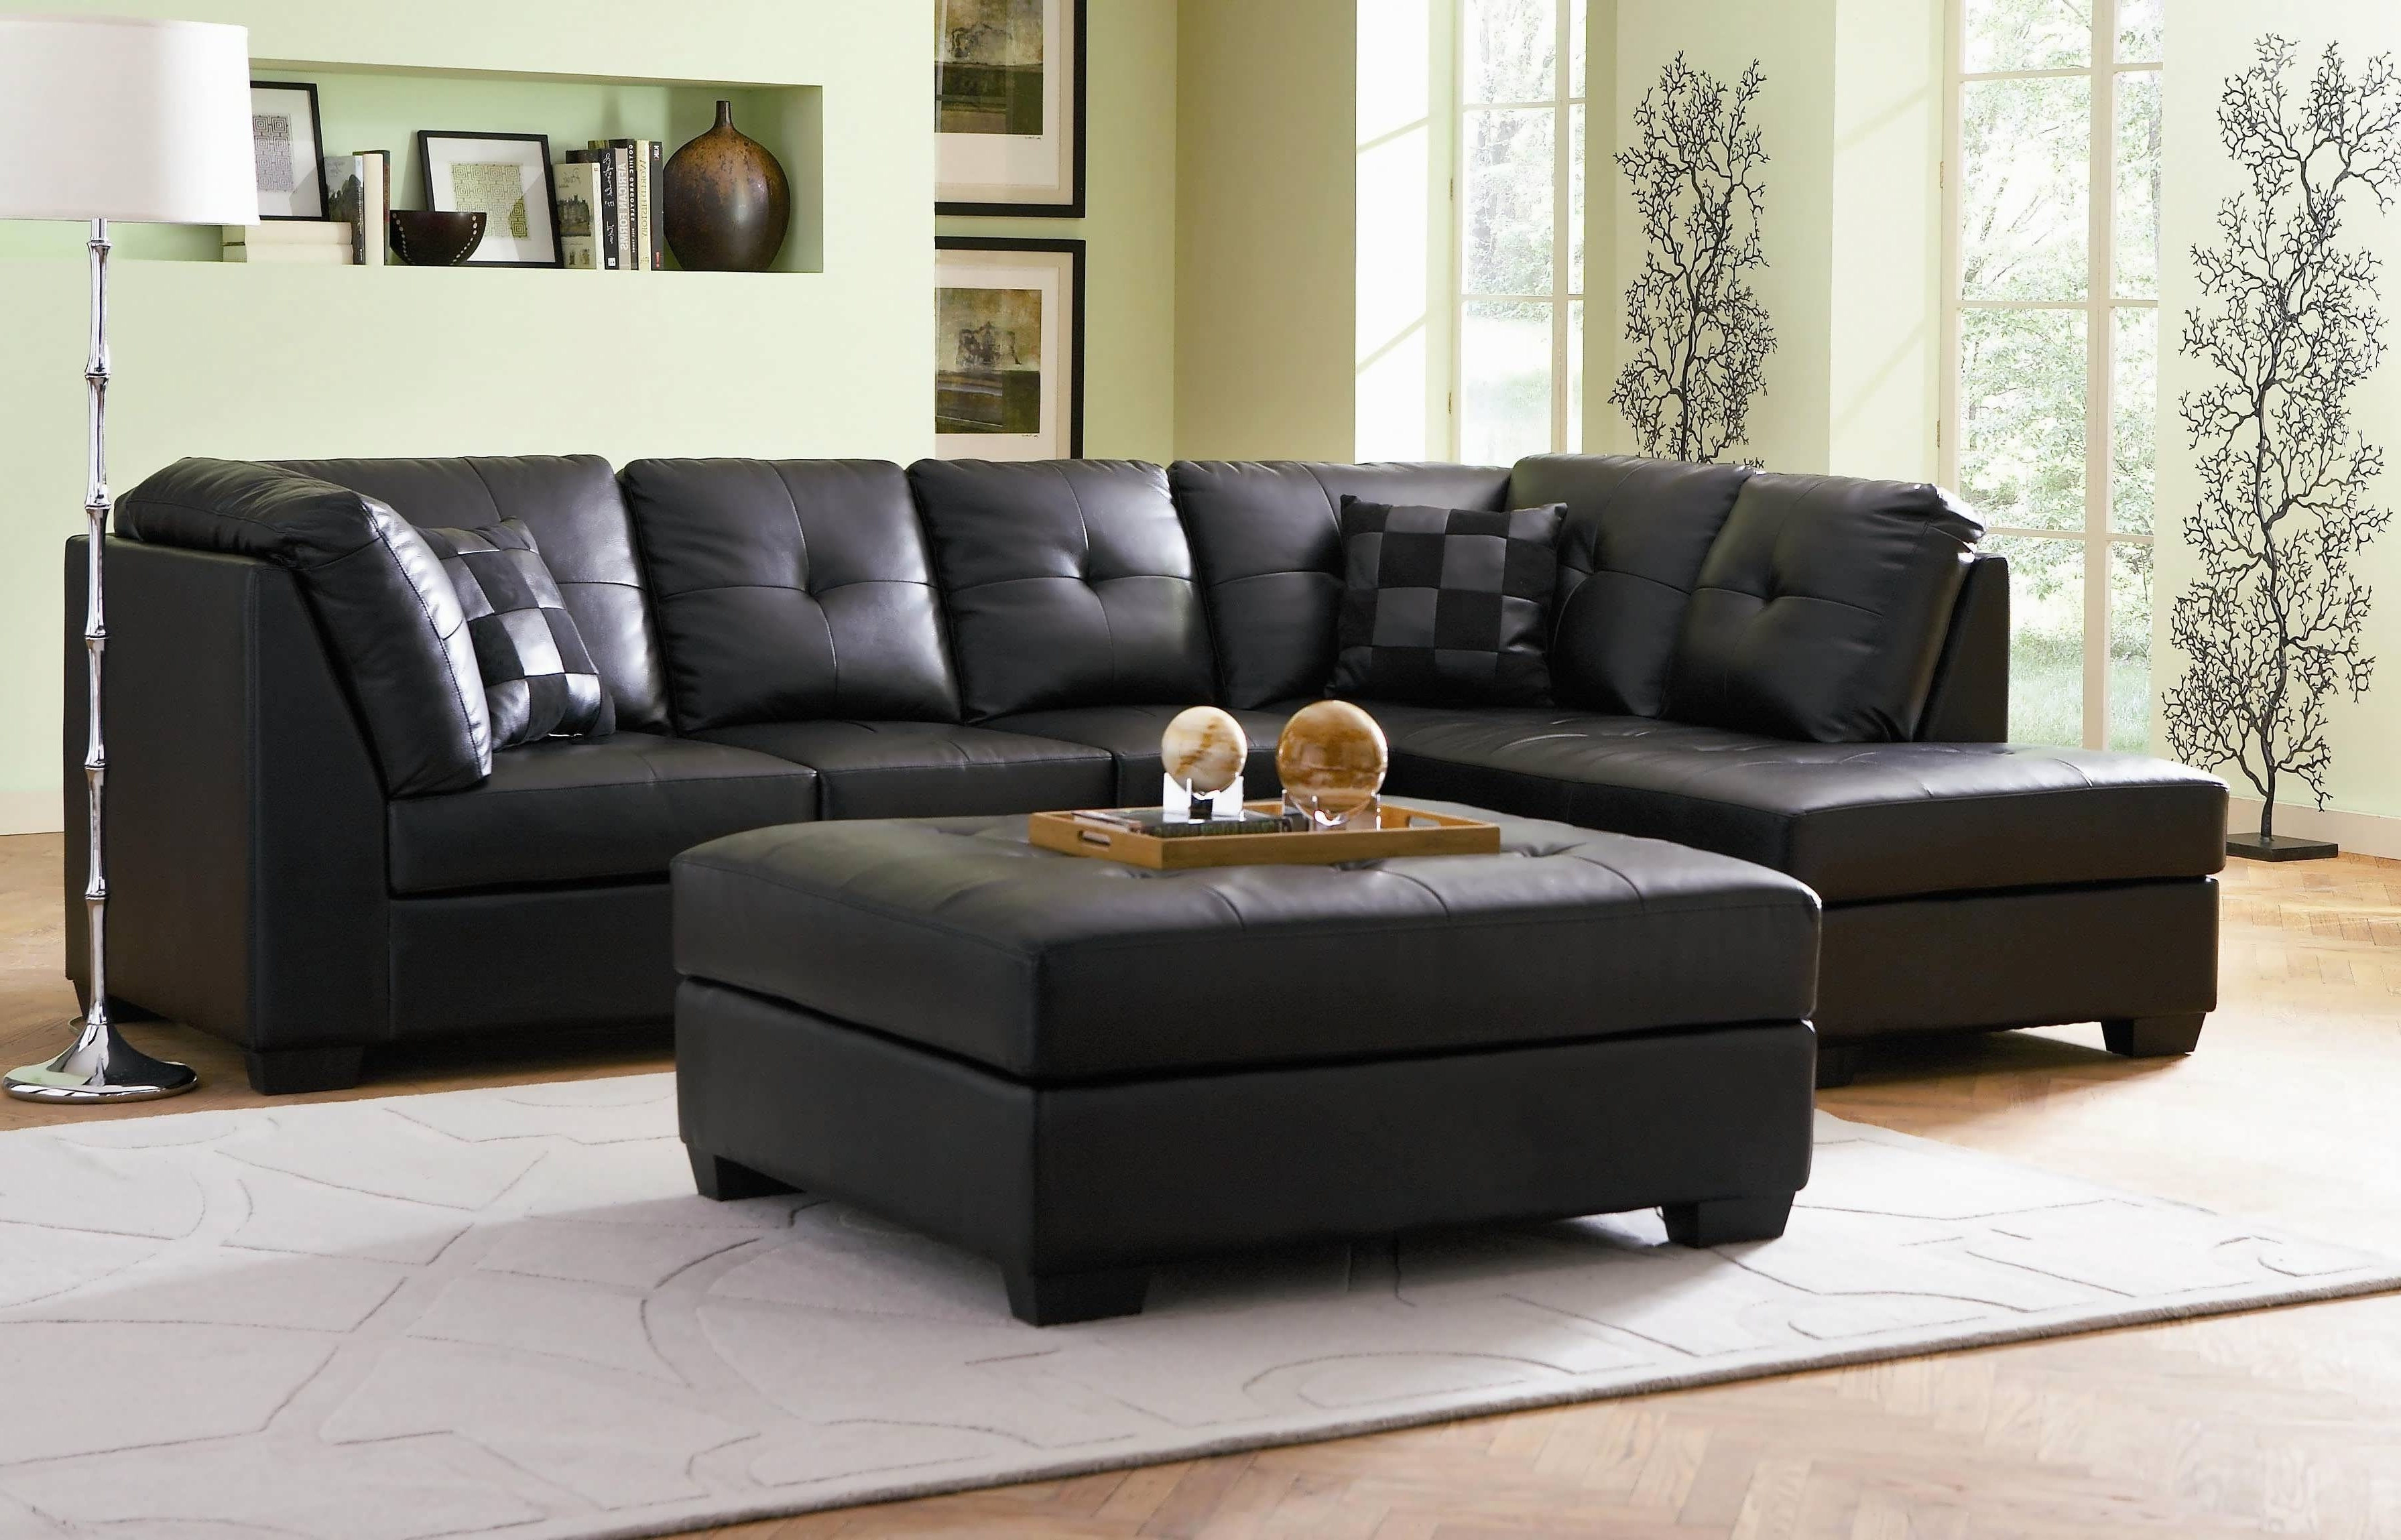 2018 Small Chaise Sectionals Pertaining To Sofa : Big Sectional Couch Discount Sectionals Living Room (View 1 of 15)